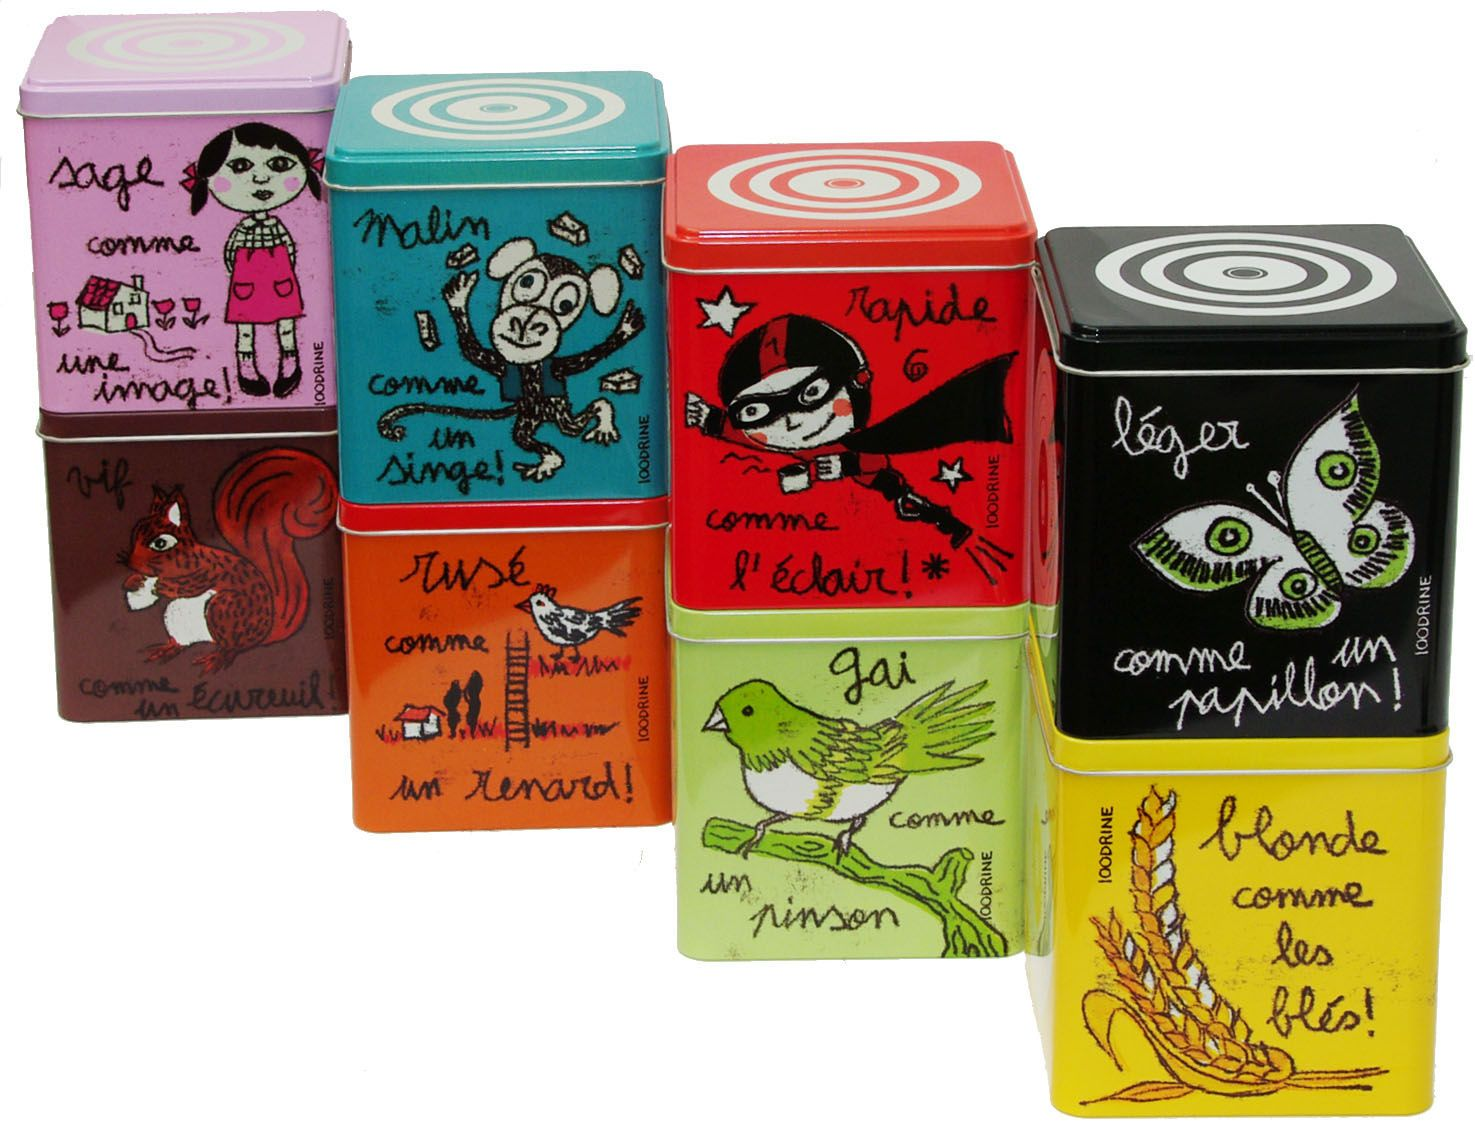 Cible - Spice Box by 100drine pour Sentou Edition: I want the whole collection, they're gorgeous andsooo cute!